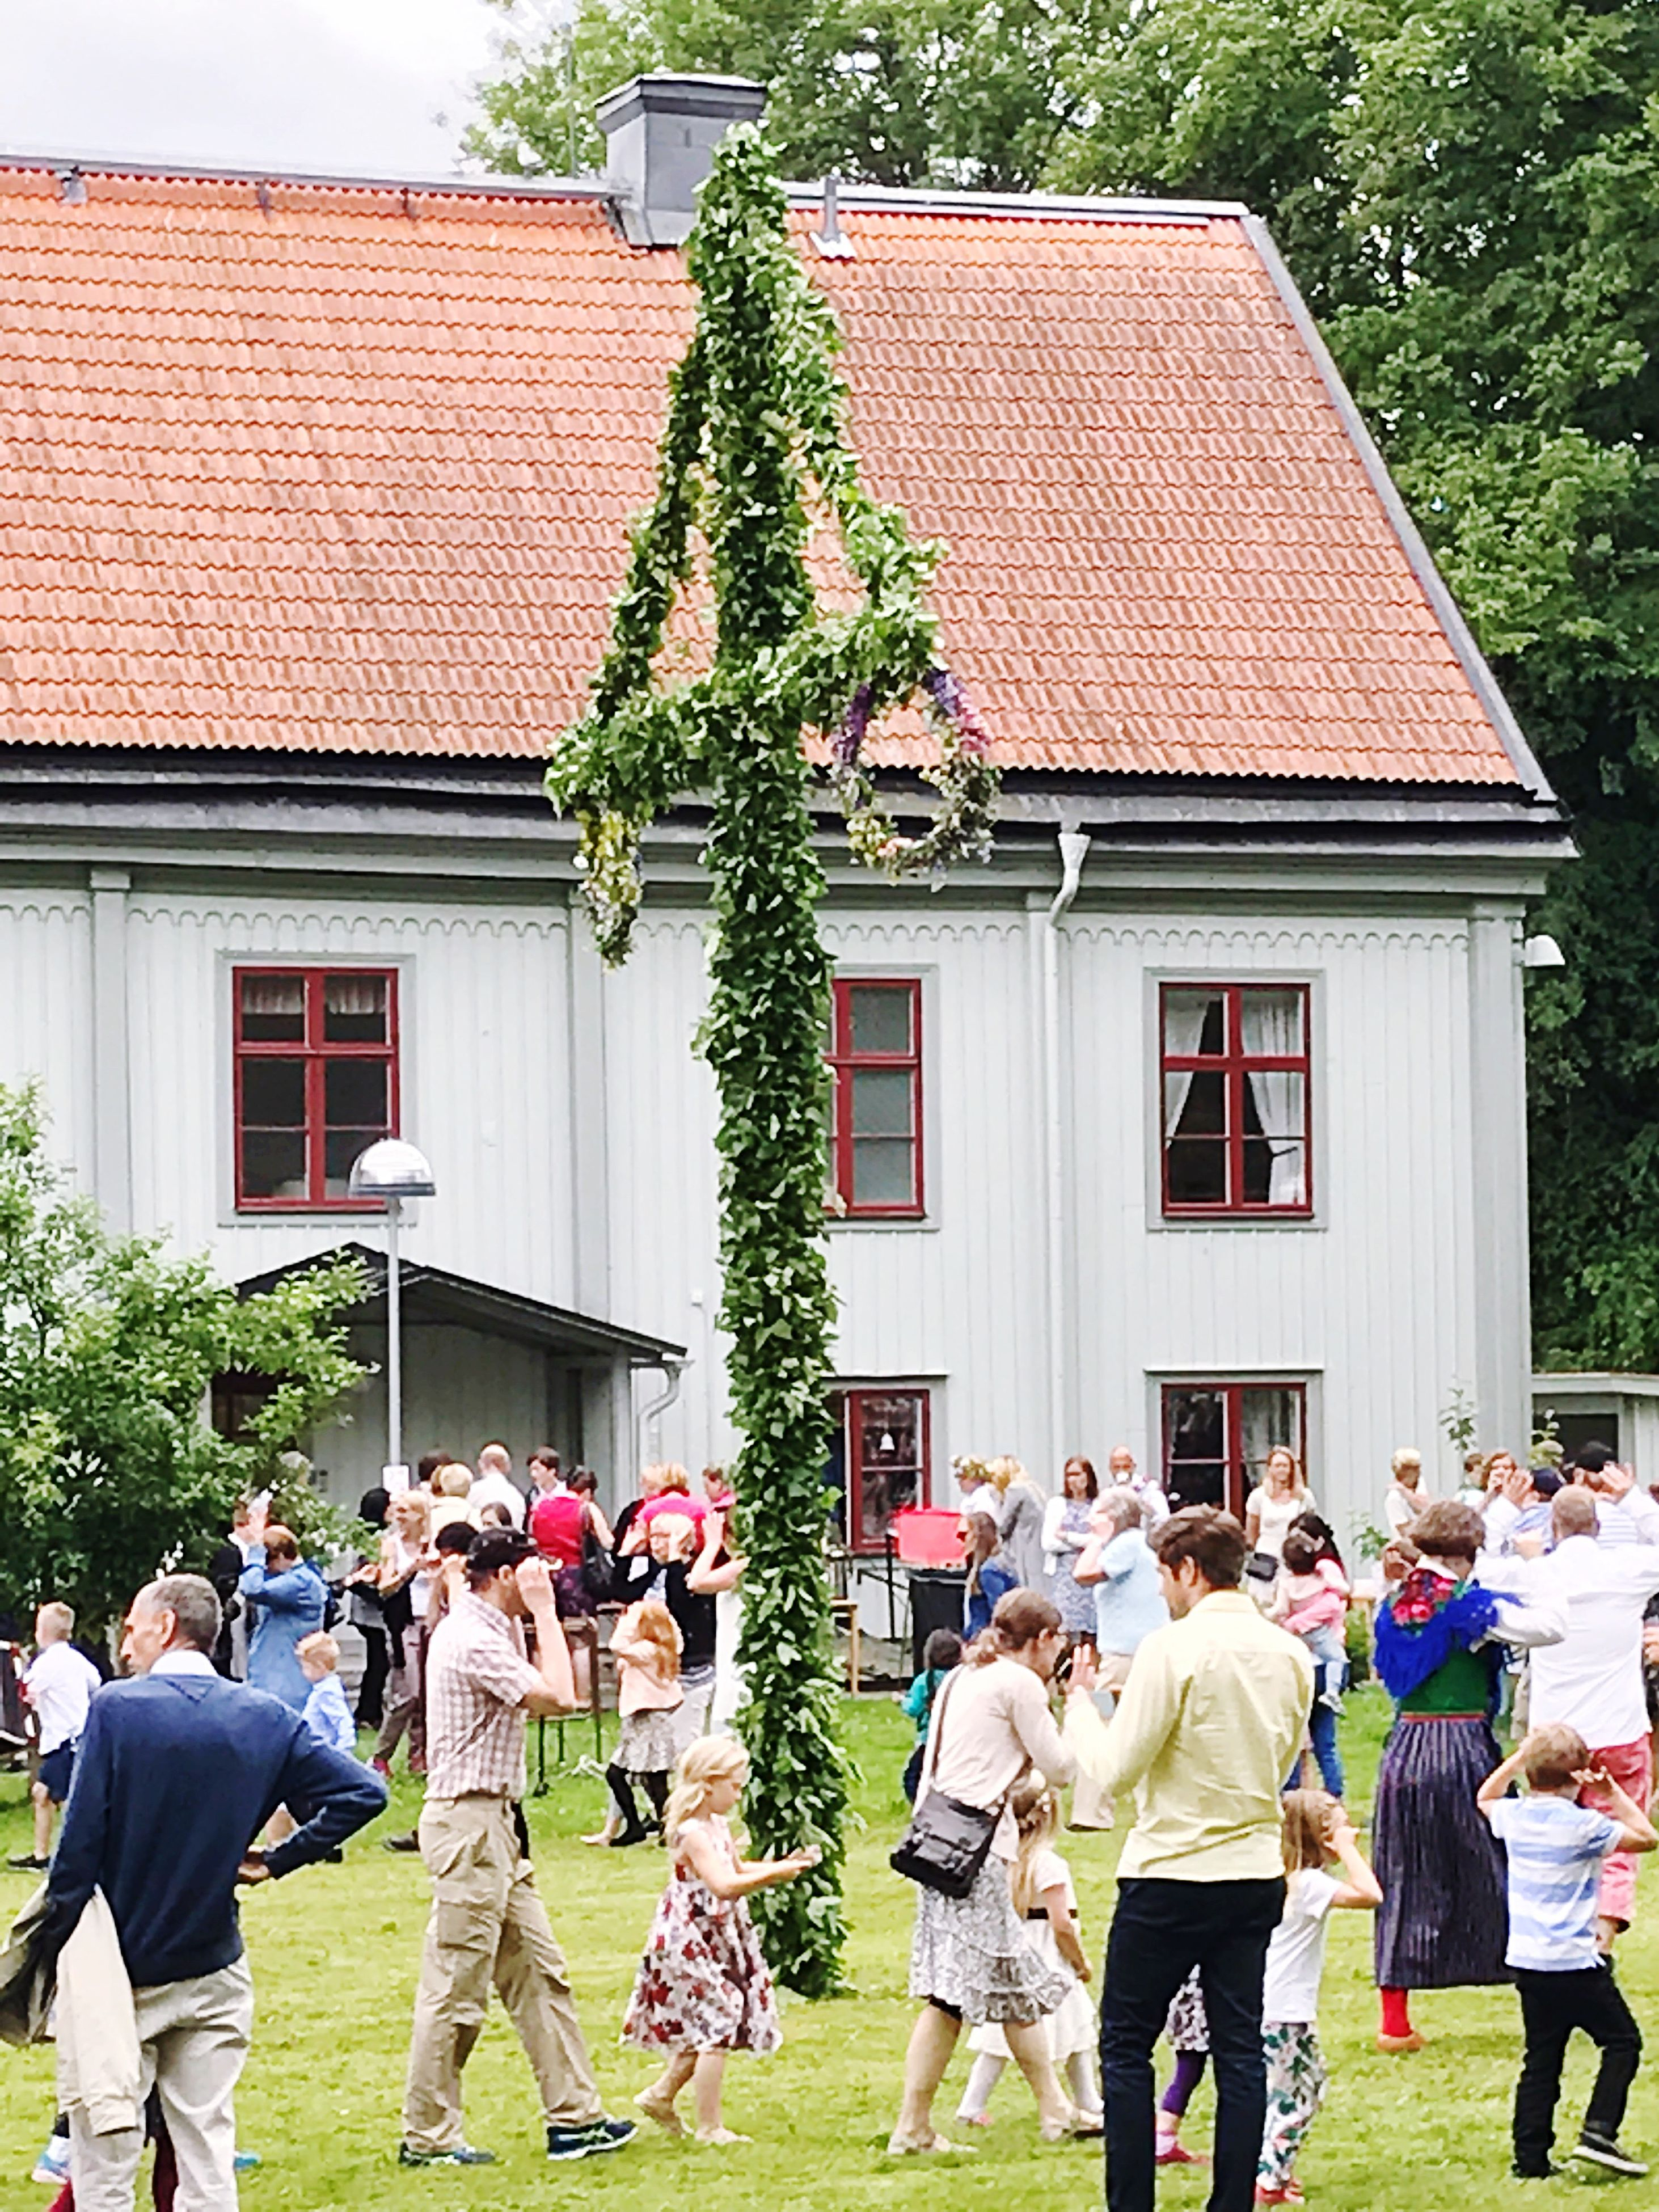 building exterior, large group of people, built structure, architecture, house, real people, day, men, tree, outdoors, education, women, people, sky, adult, adults only